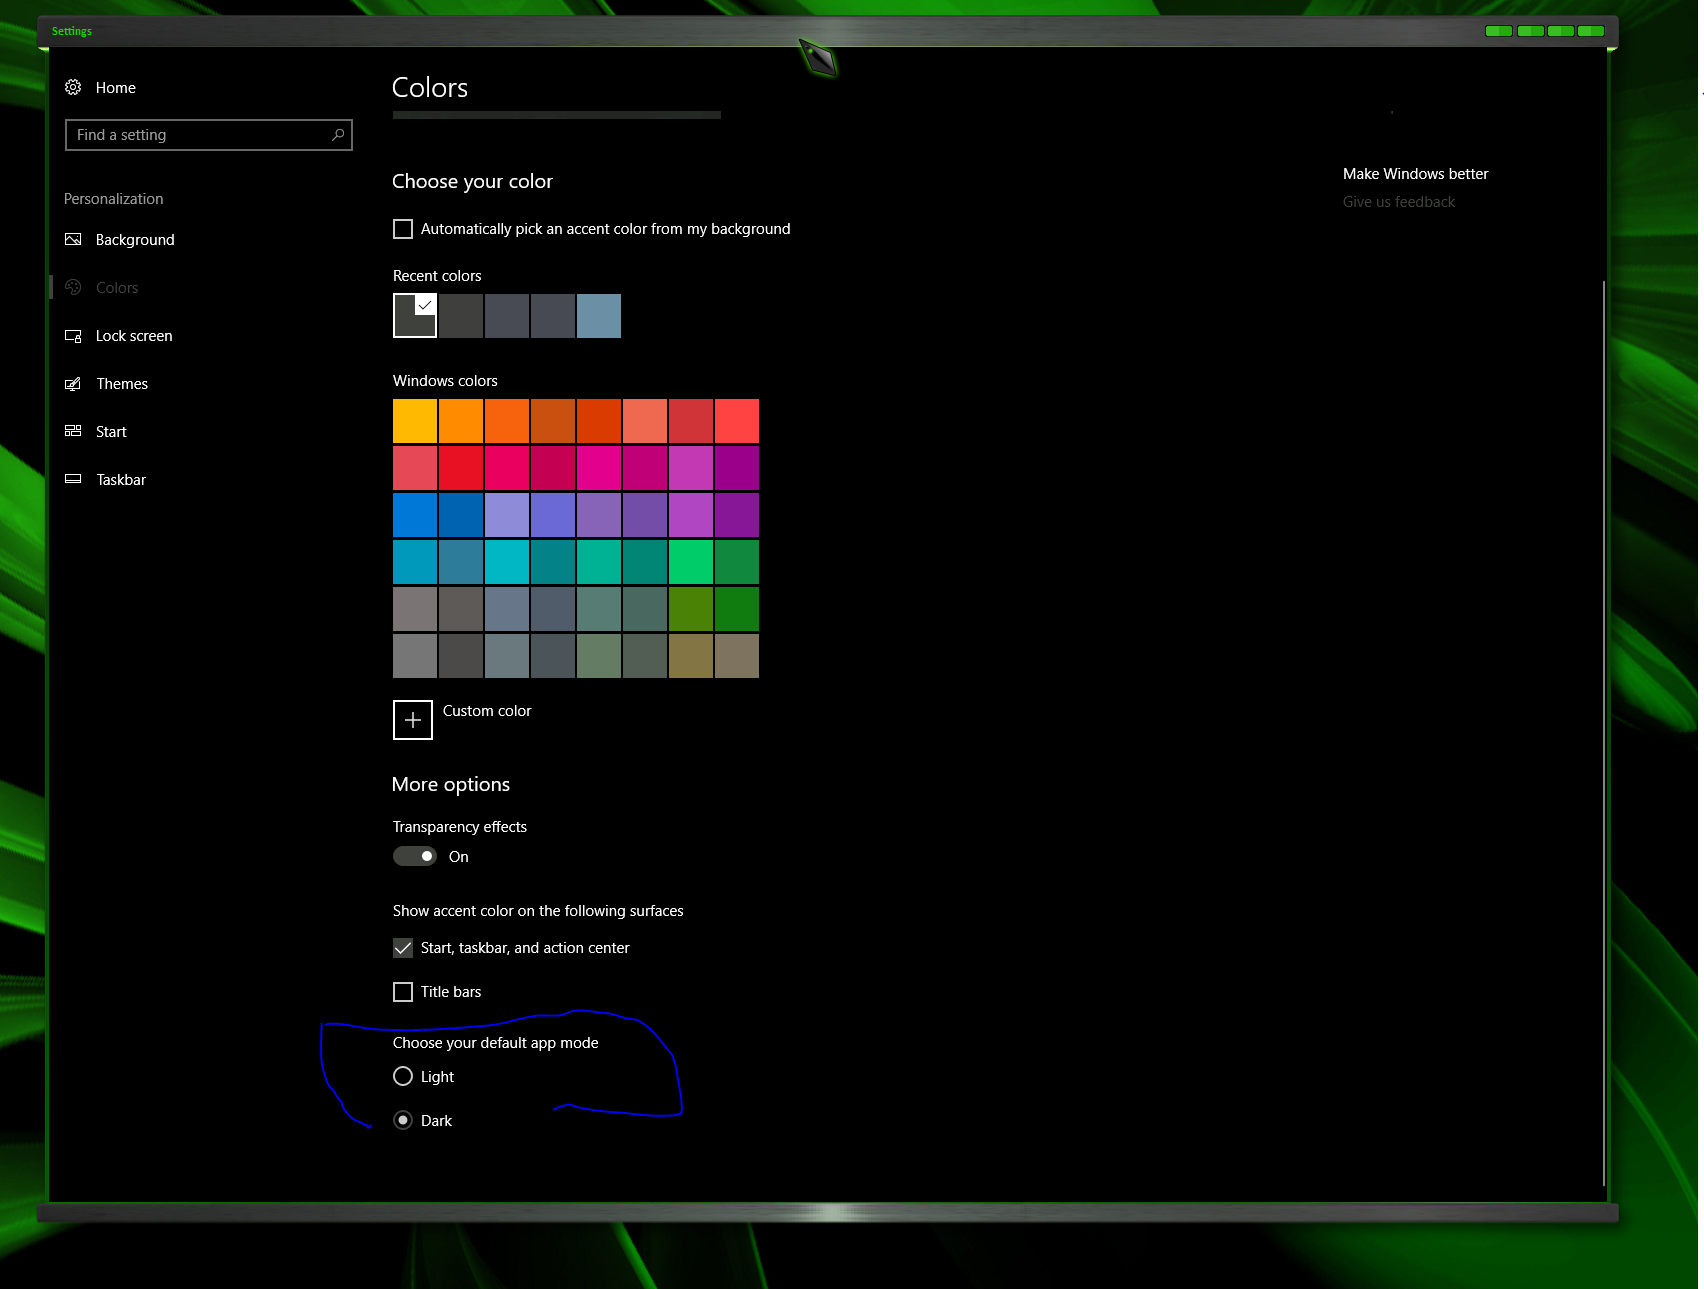 Windows not being skinned properly latest Windows 10 release